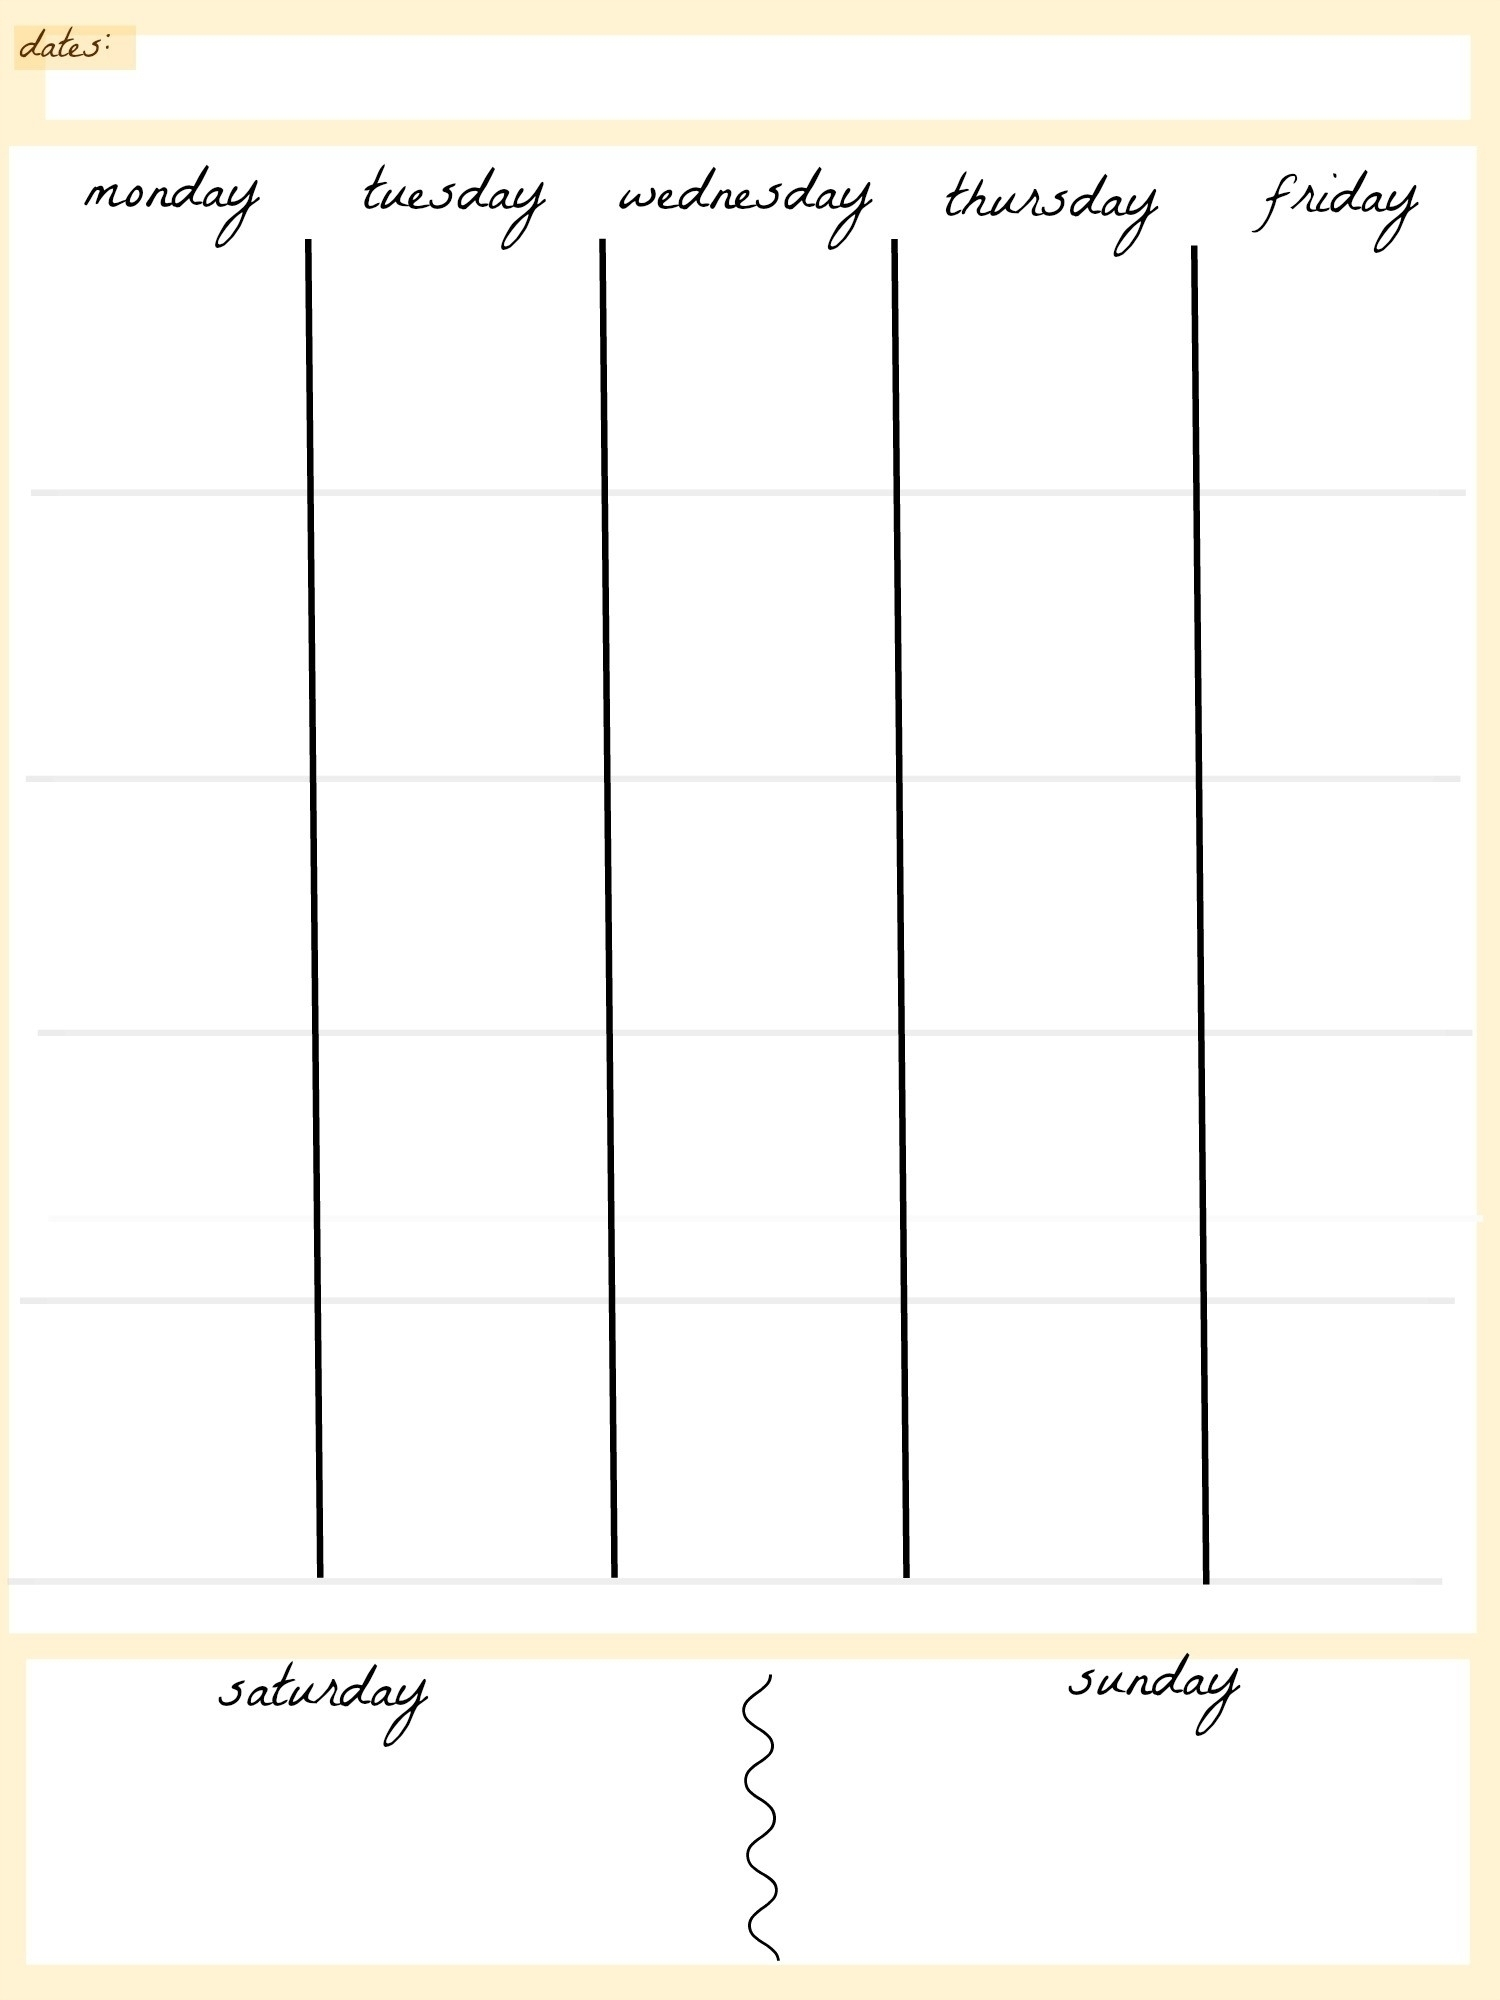 Printable 5 Day Working Week Calendar | Template Calendar Printable in Free Printable 5 Day Calendar